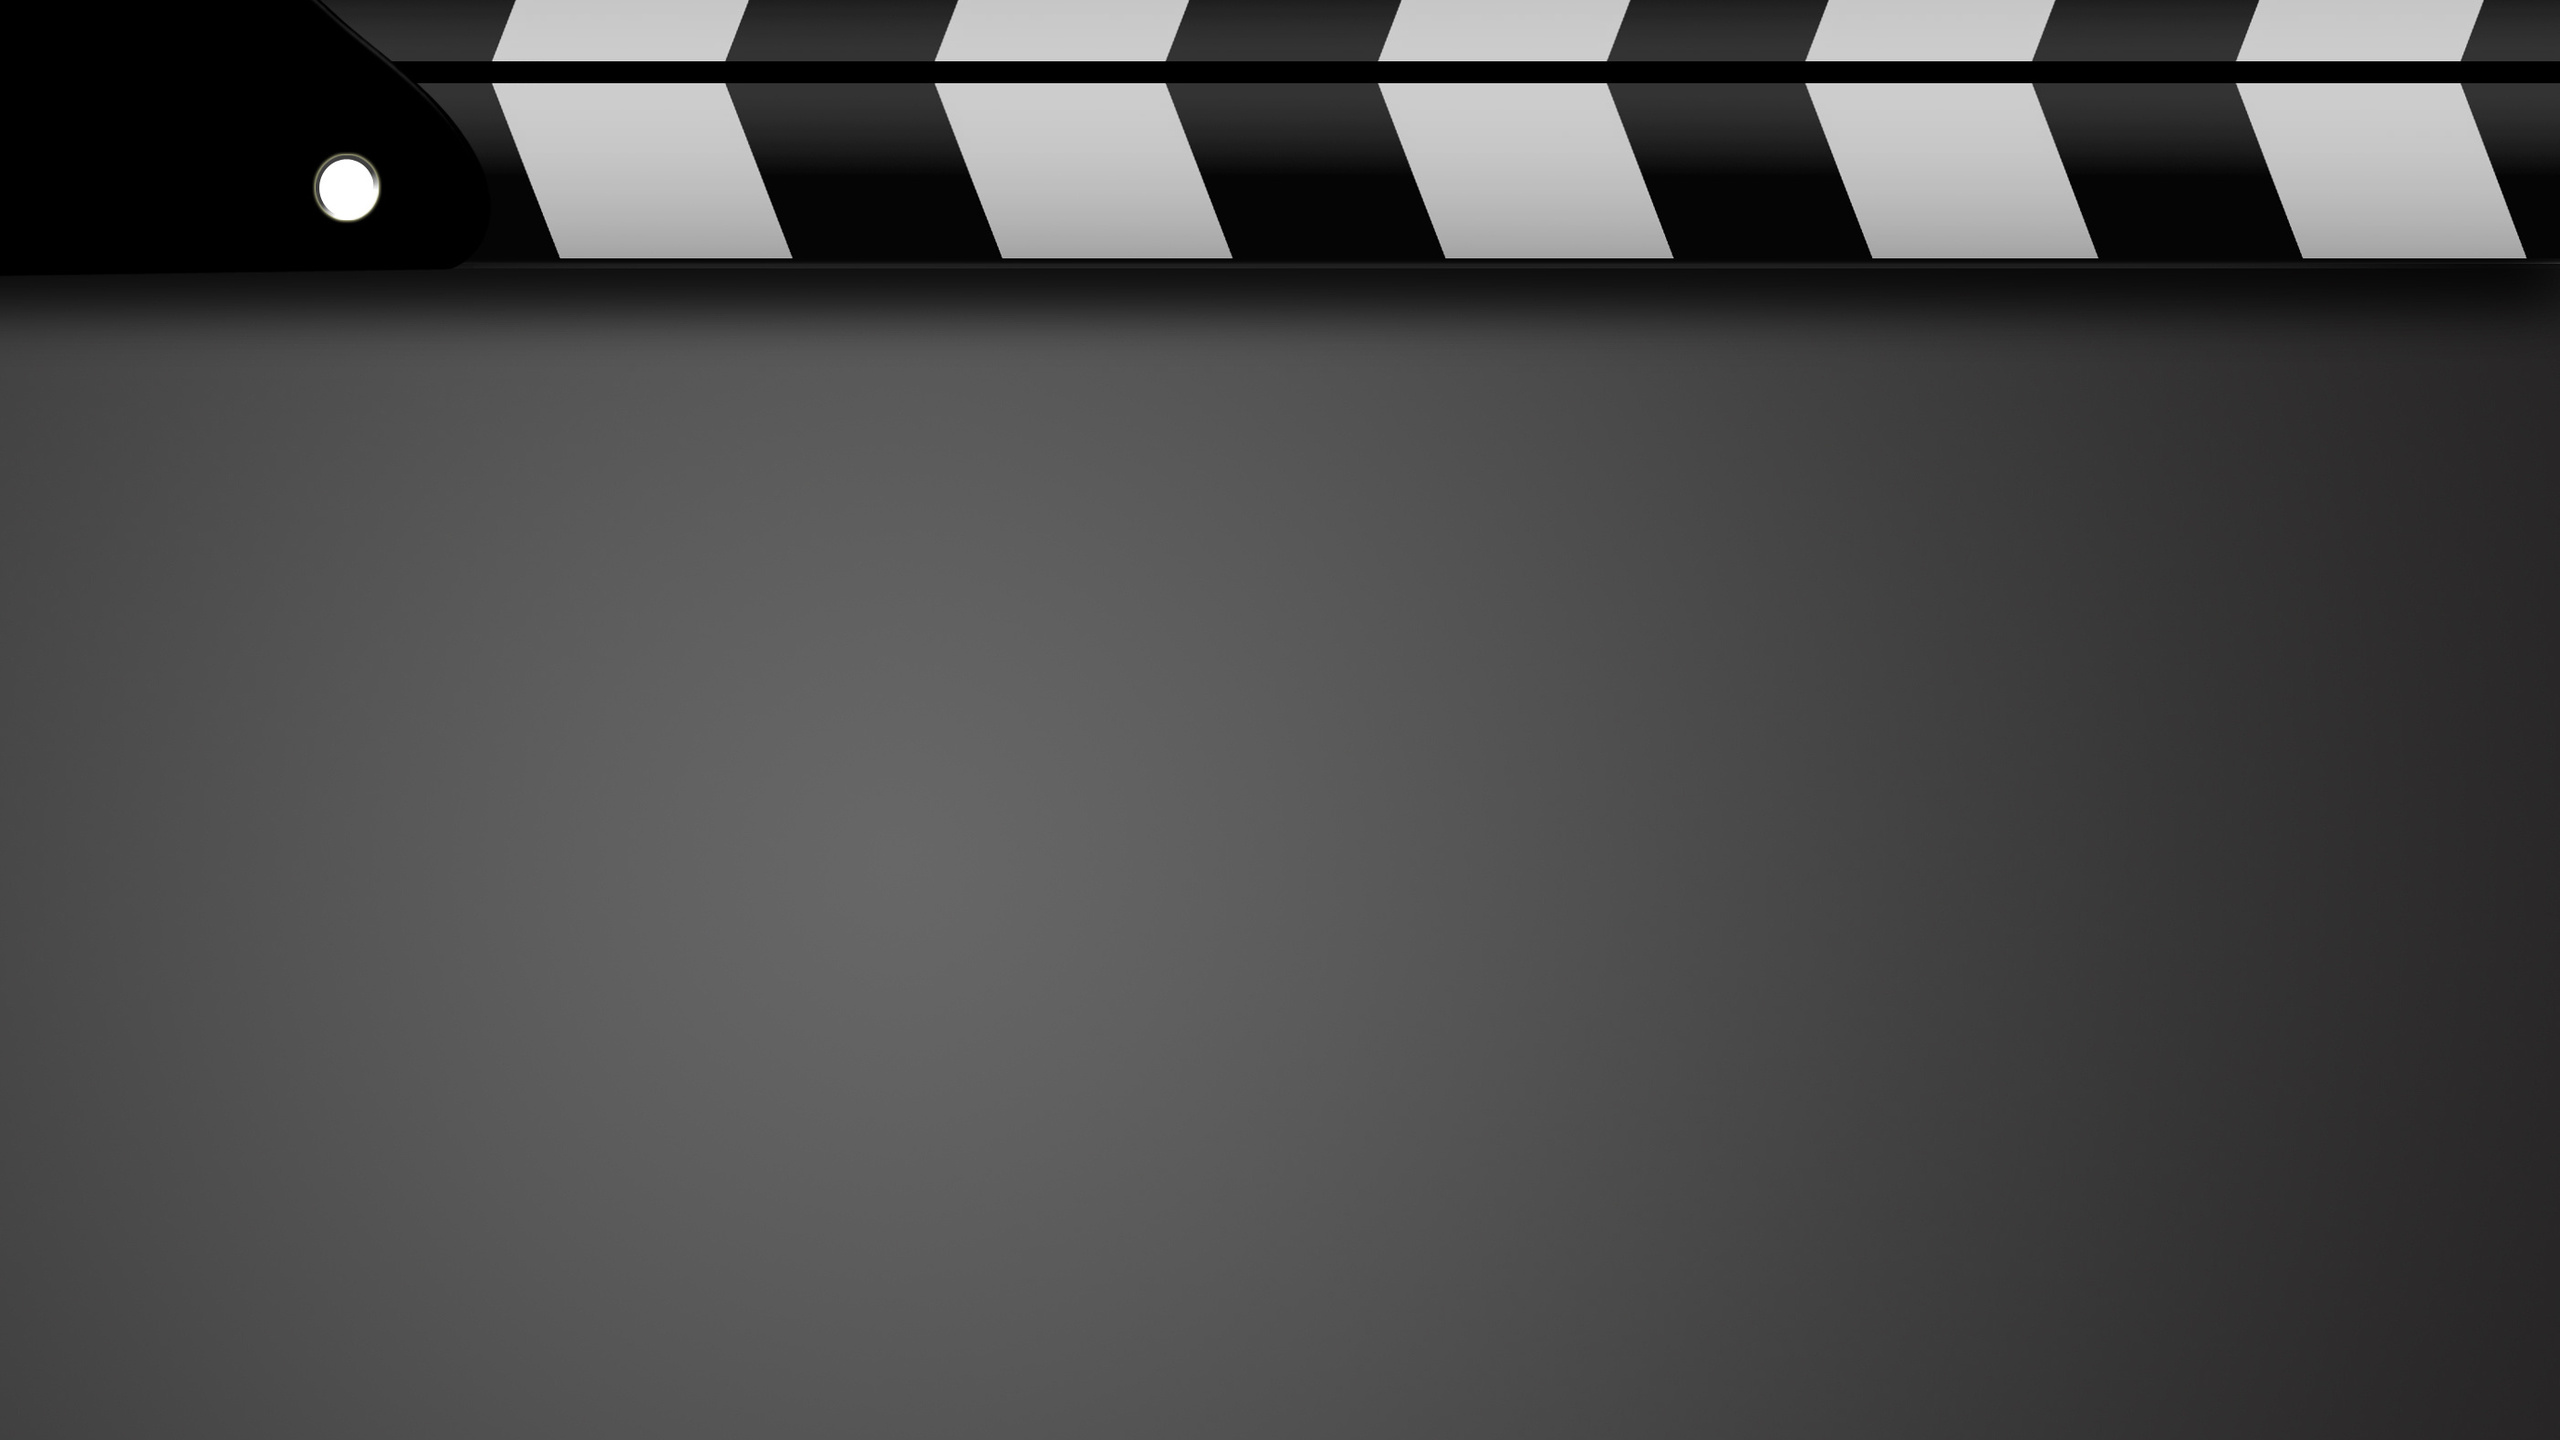 download movie themed wallpaper gallery